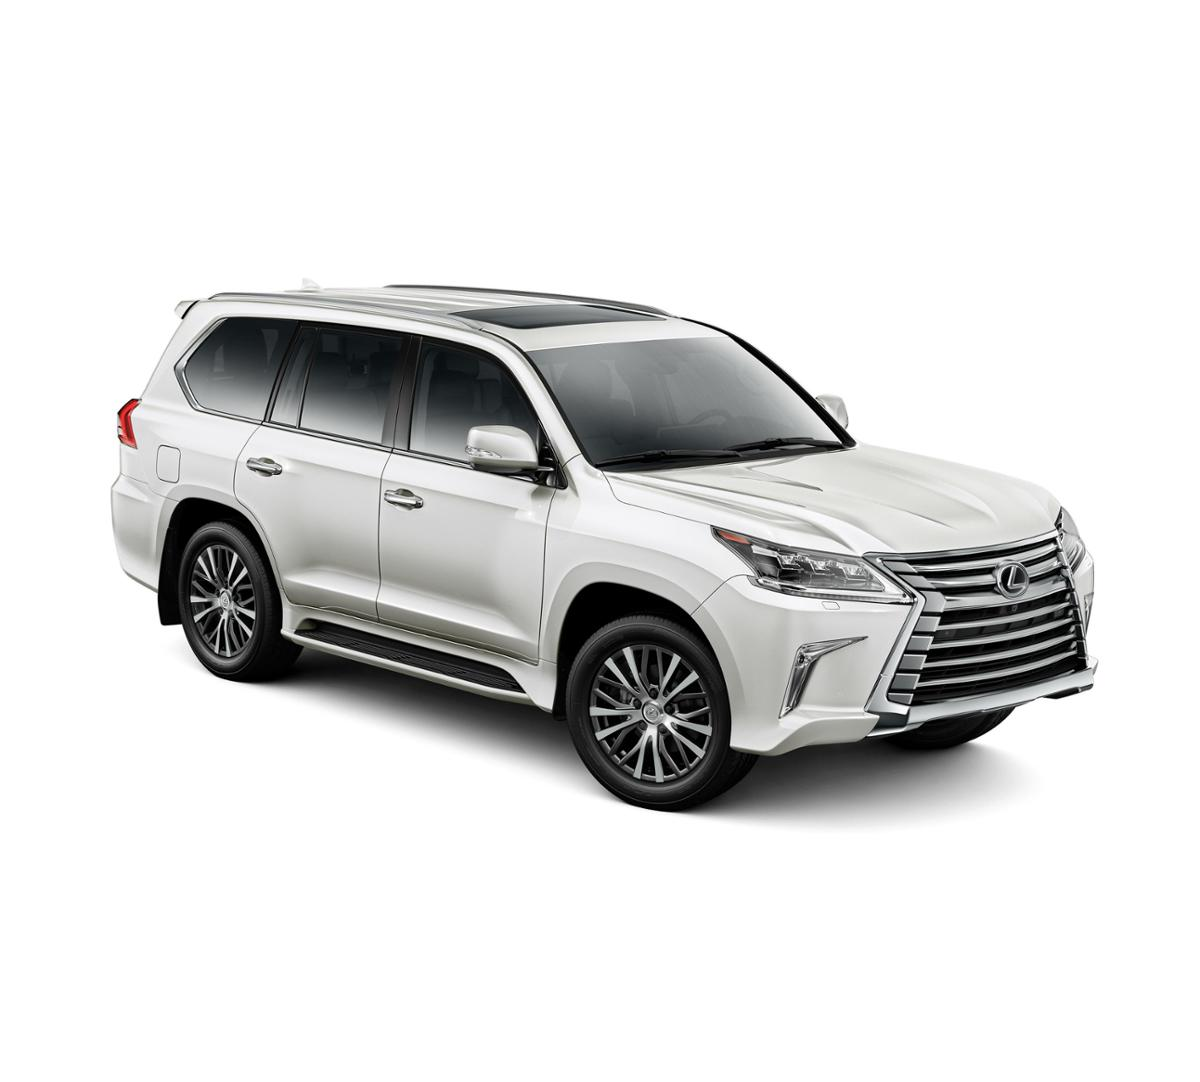 2017 Lexus LX 570 Vehicle Photo in Appleton, WI 54913